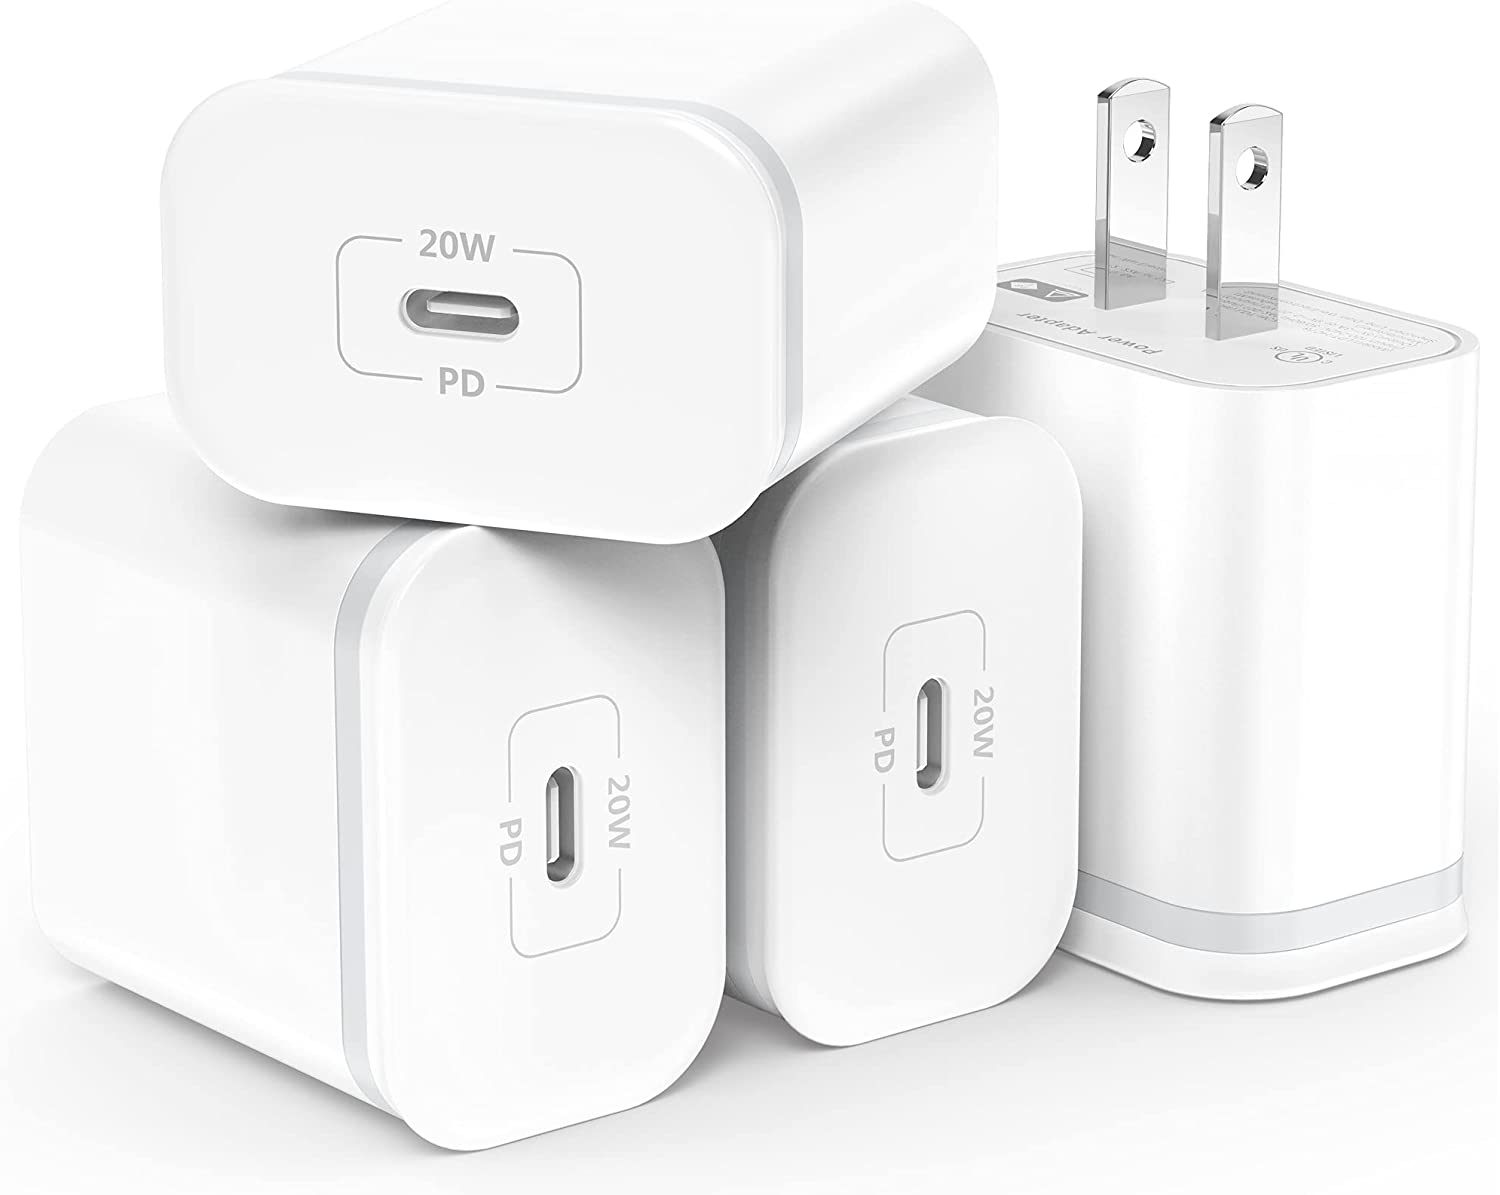 LUOATIP 4-Pack 20W USB C Fast Charger for iPhone 12/12 Mini/12 Pro/12 Pro Max, PD 3.0 Wall Plug Charging Cube Block Adapter USBC Box Brick for Phone 11 Pro Max SE 2020, iPad Pro, AirPods Pro